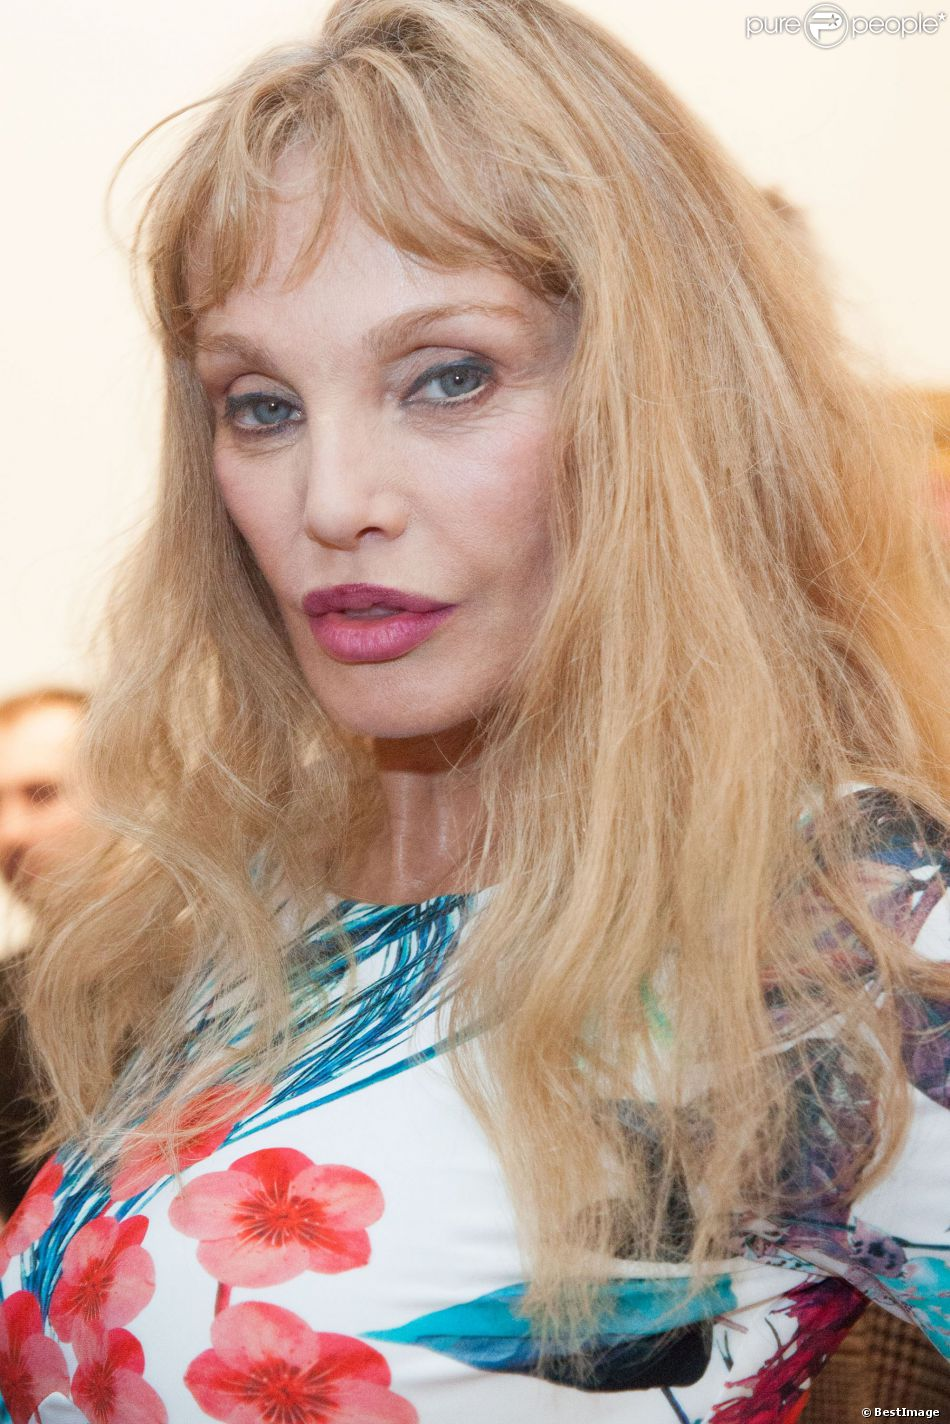 arielle dombasle libertaarielle dombasle era, arielle dombasle young, arielle dombasle wiki, arielle dombasle 2016, arielle dombasle & nicolas ker, arielle dombasle wiki fr, arielle dombasle besame mucho, arielle dombasle liberta, arielle dombasle hasta siempre, arielle dombasle my love for evermore, arielle dombasle sway, arielle dombasle discogs, arielle dombasle the hillbilly moon explosion, arielle dombasle i wish you love, arielle dombasle quizas quizas quizas, arielle dombasle quien sera, arielle dombasle video youtube, arielle dombasle deezer, arielle dombasle clip, arielle dombasle age